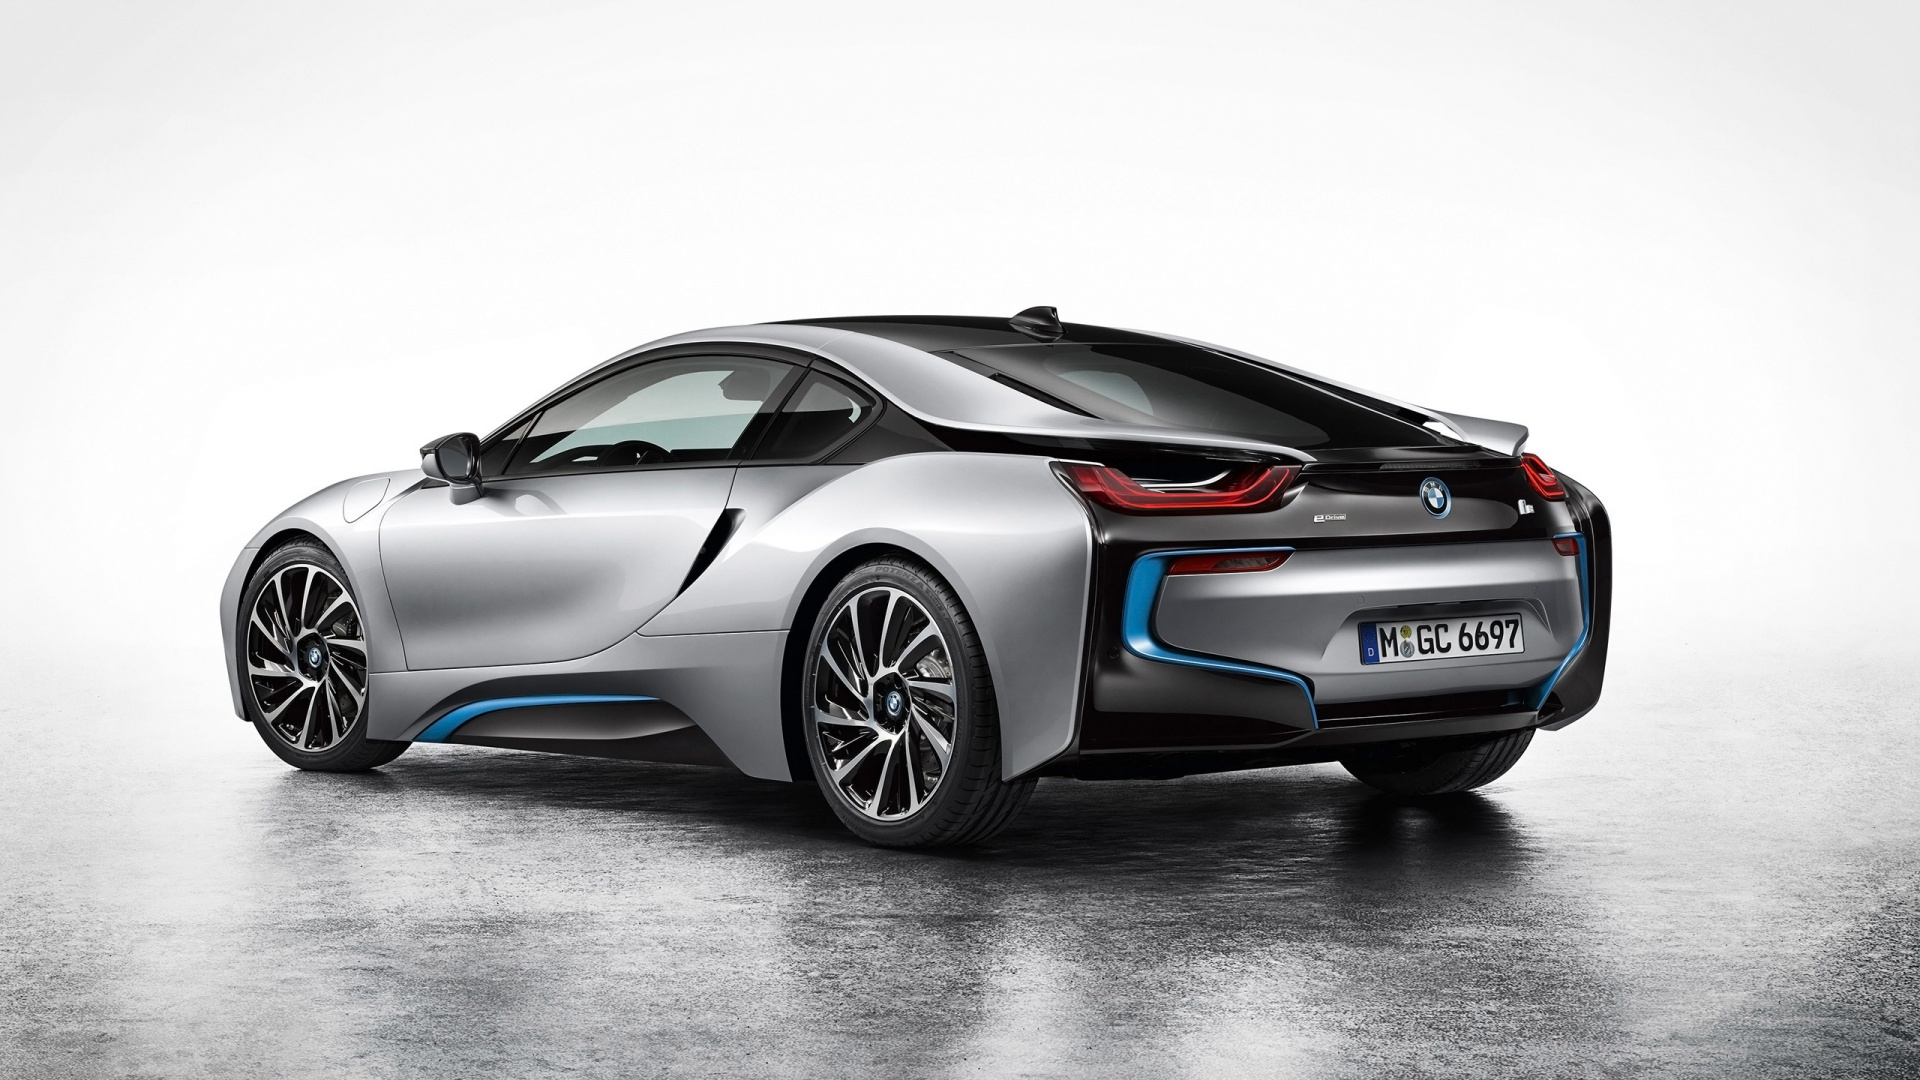 Bmw I8 New Car 2015 Wallpaper Background 6110 Wallpaper High